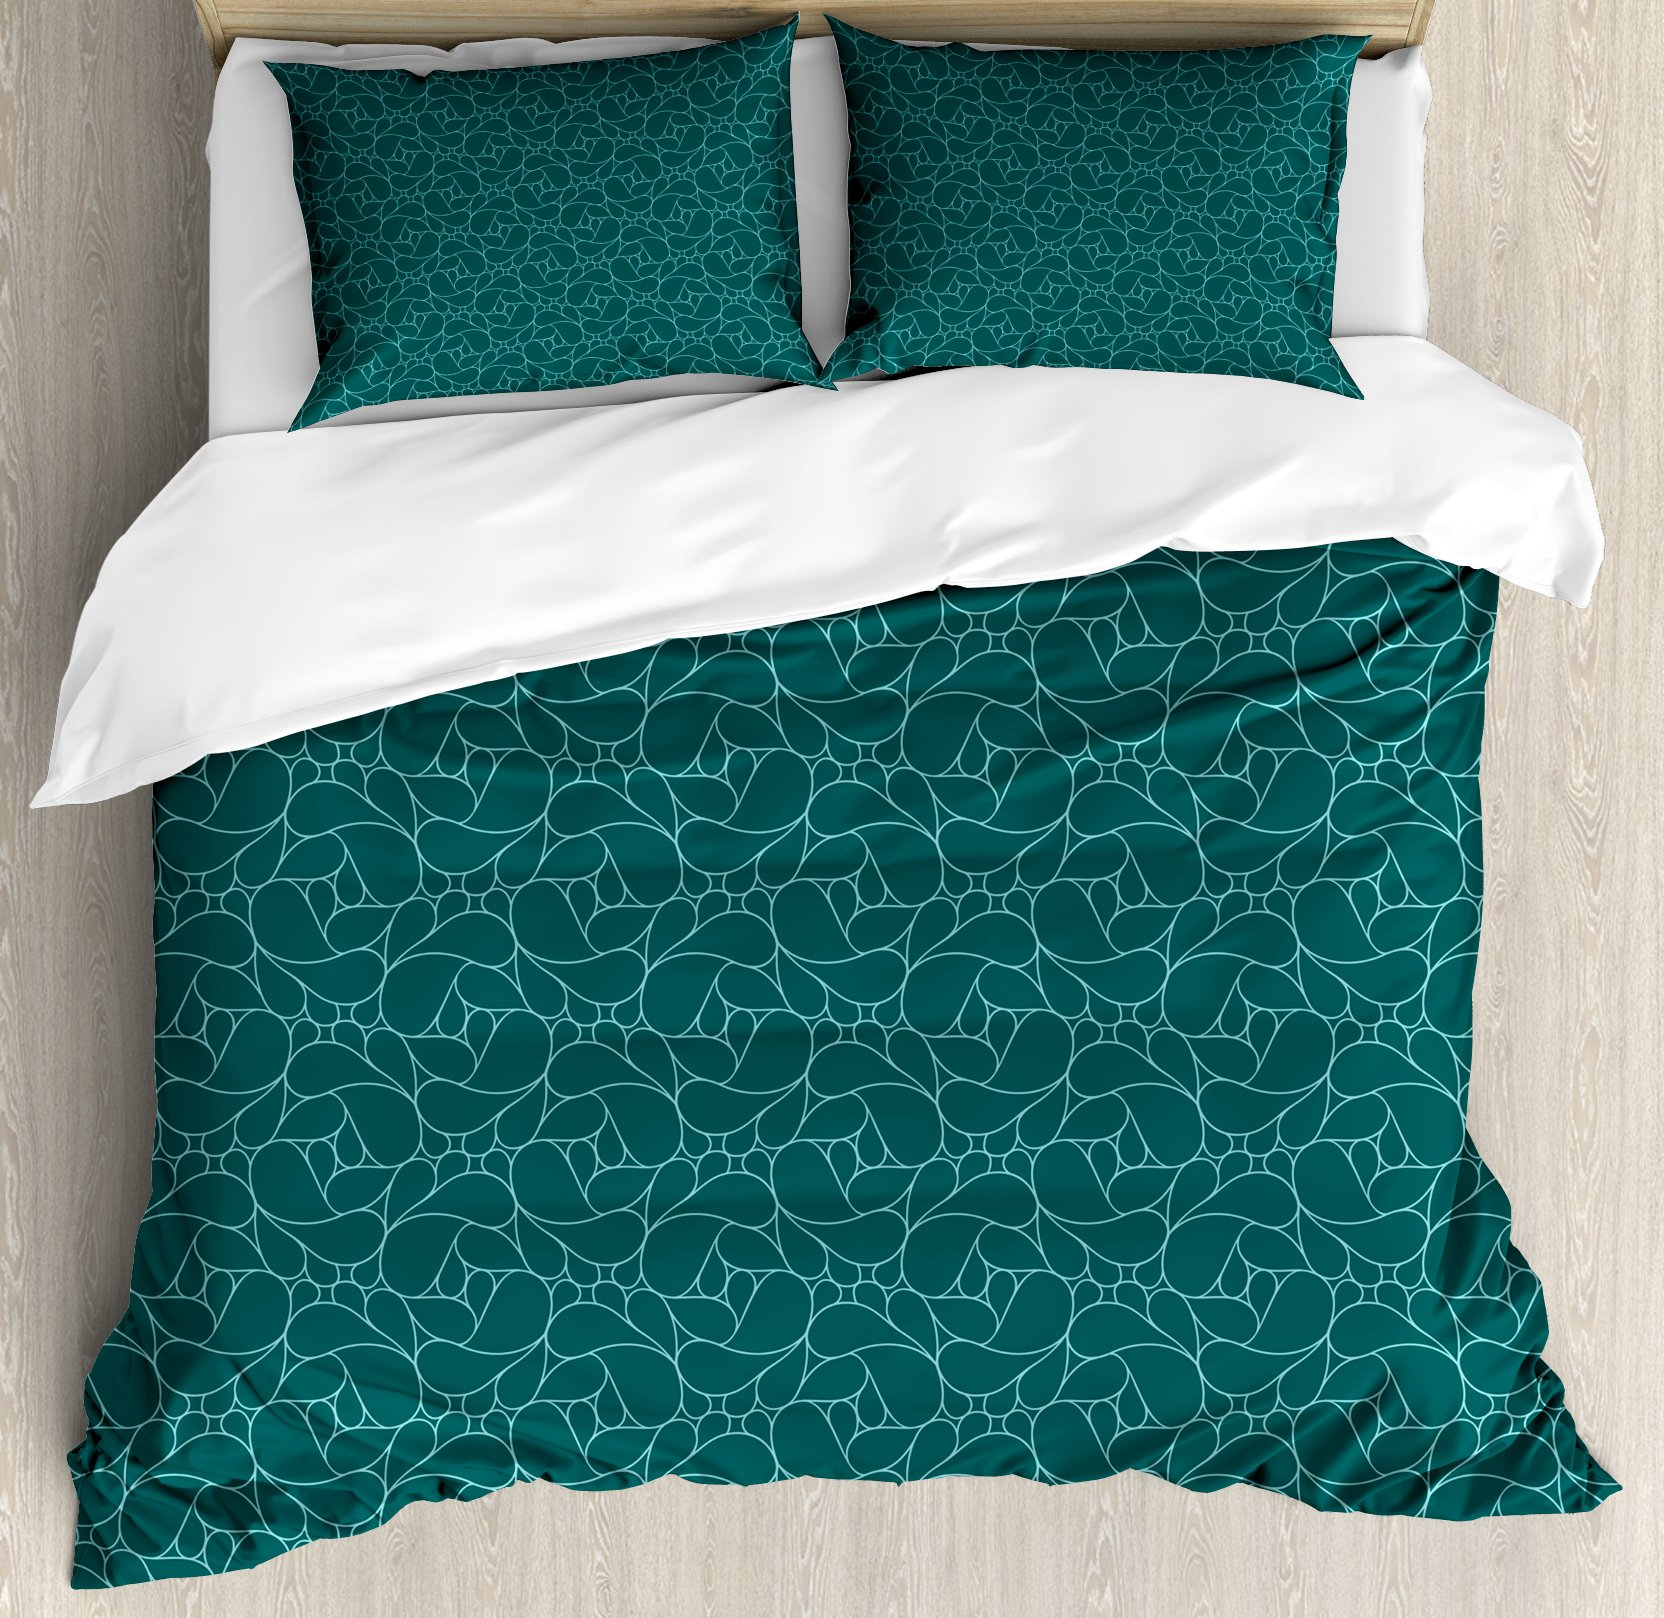 Teal Duvet Cover Set Queen Size by Ambesonne, Abstract Line Art Modern Expressionist Design Water Drop Pattern in Various Sizes, Decorative 3 Piece Bedding Set with 2 Pillow Shams, Teal Turquoise